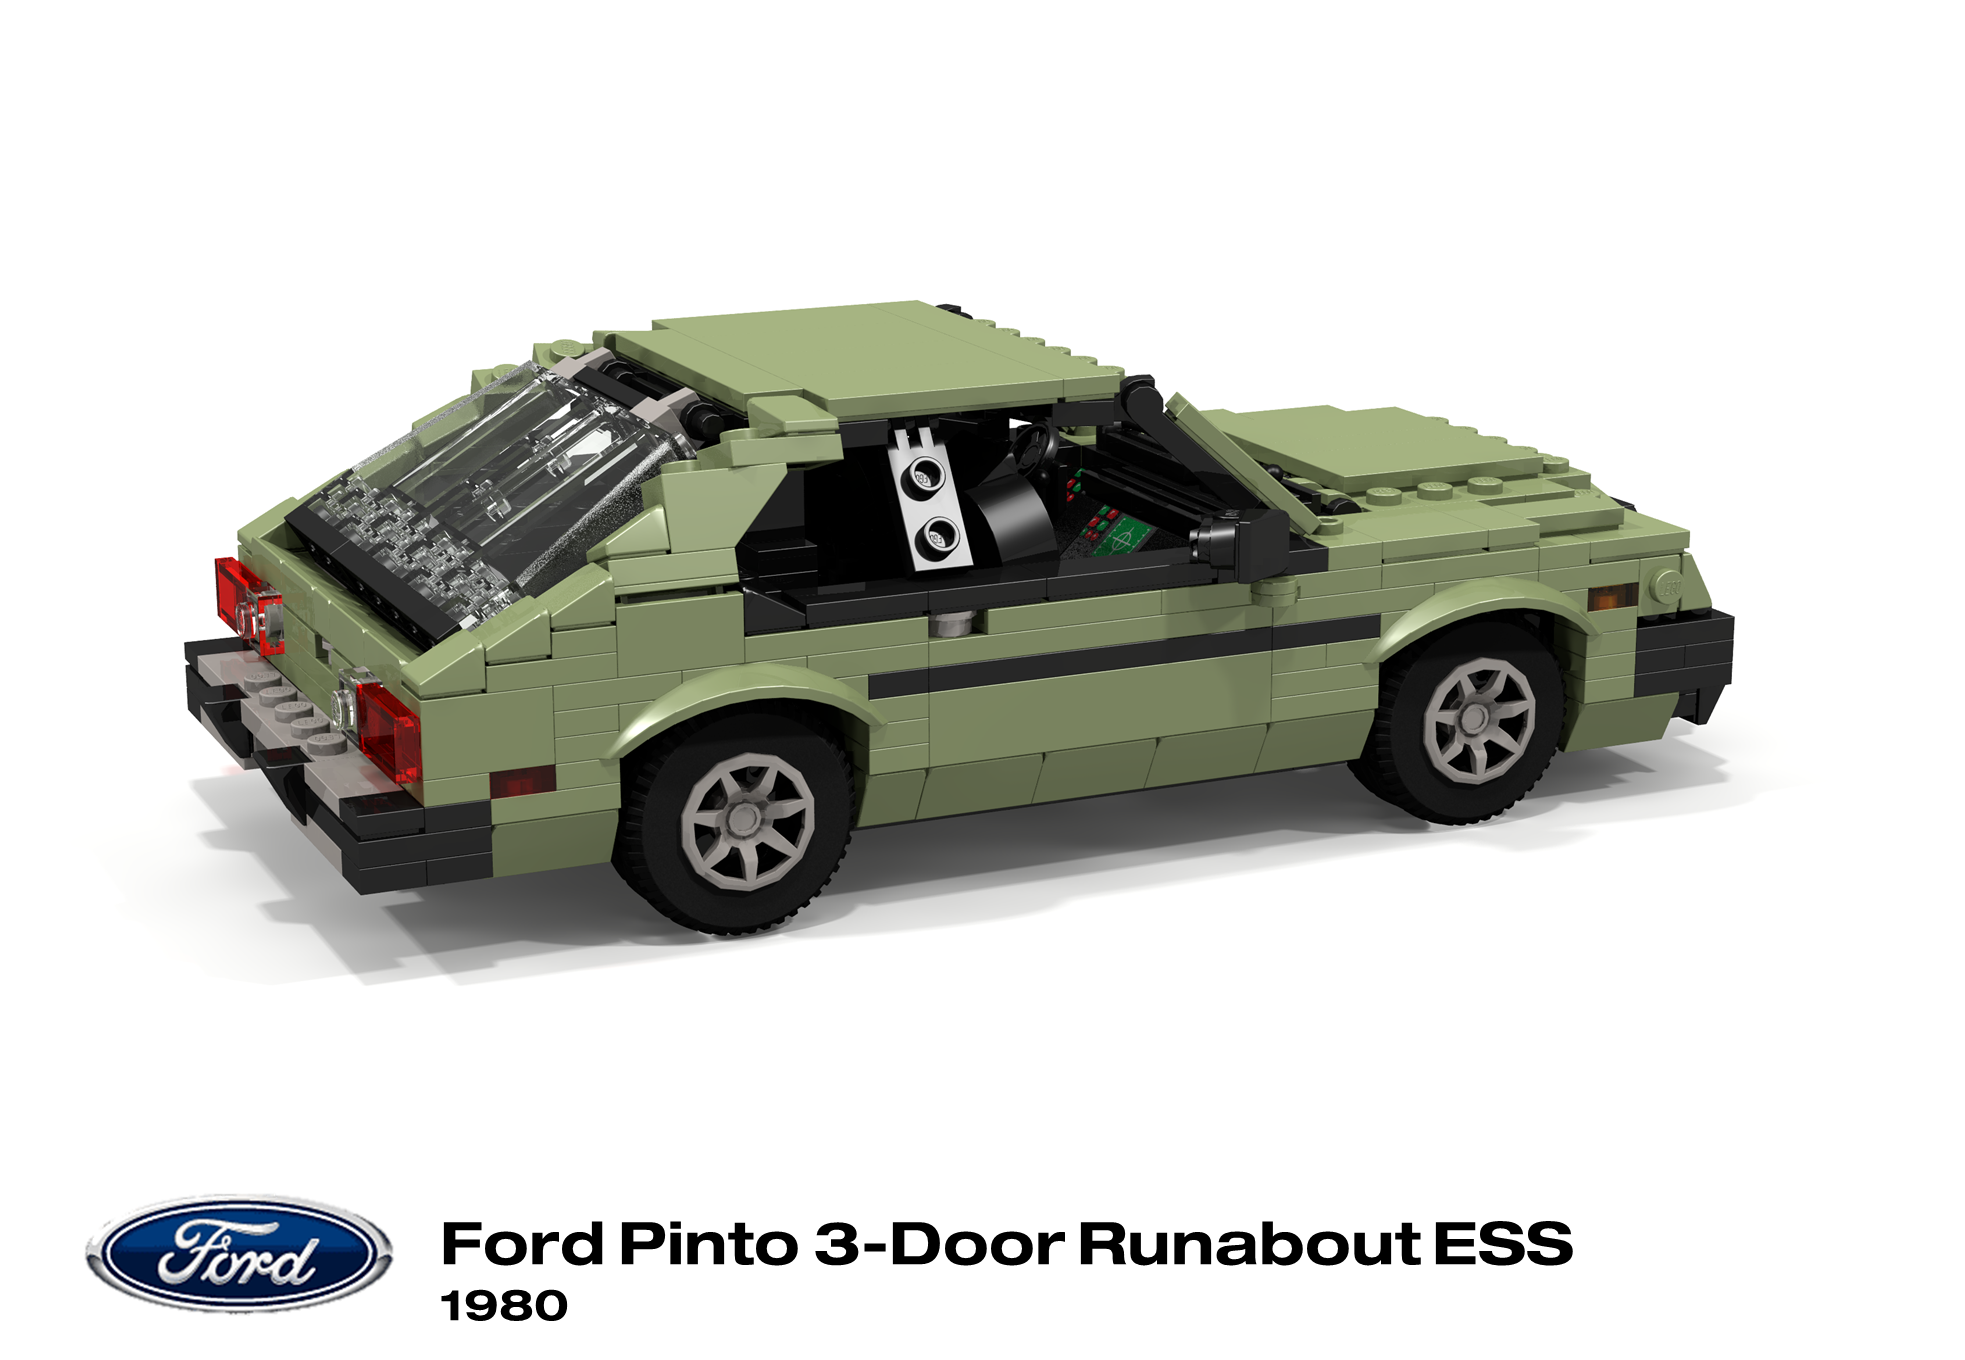 ford_pinto_runabout_ess_1980_05.png